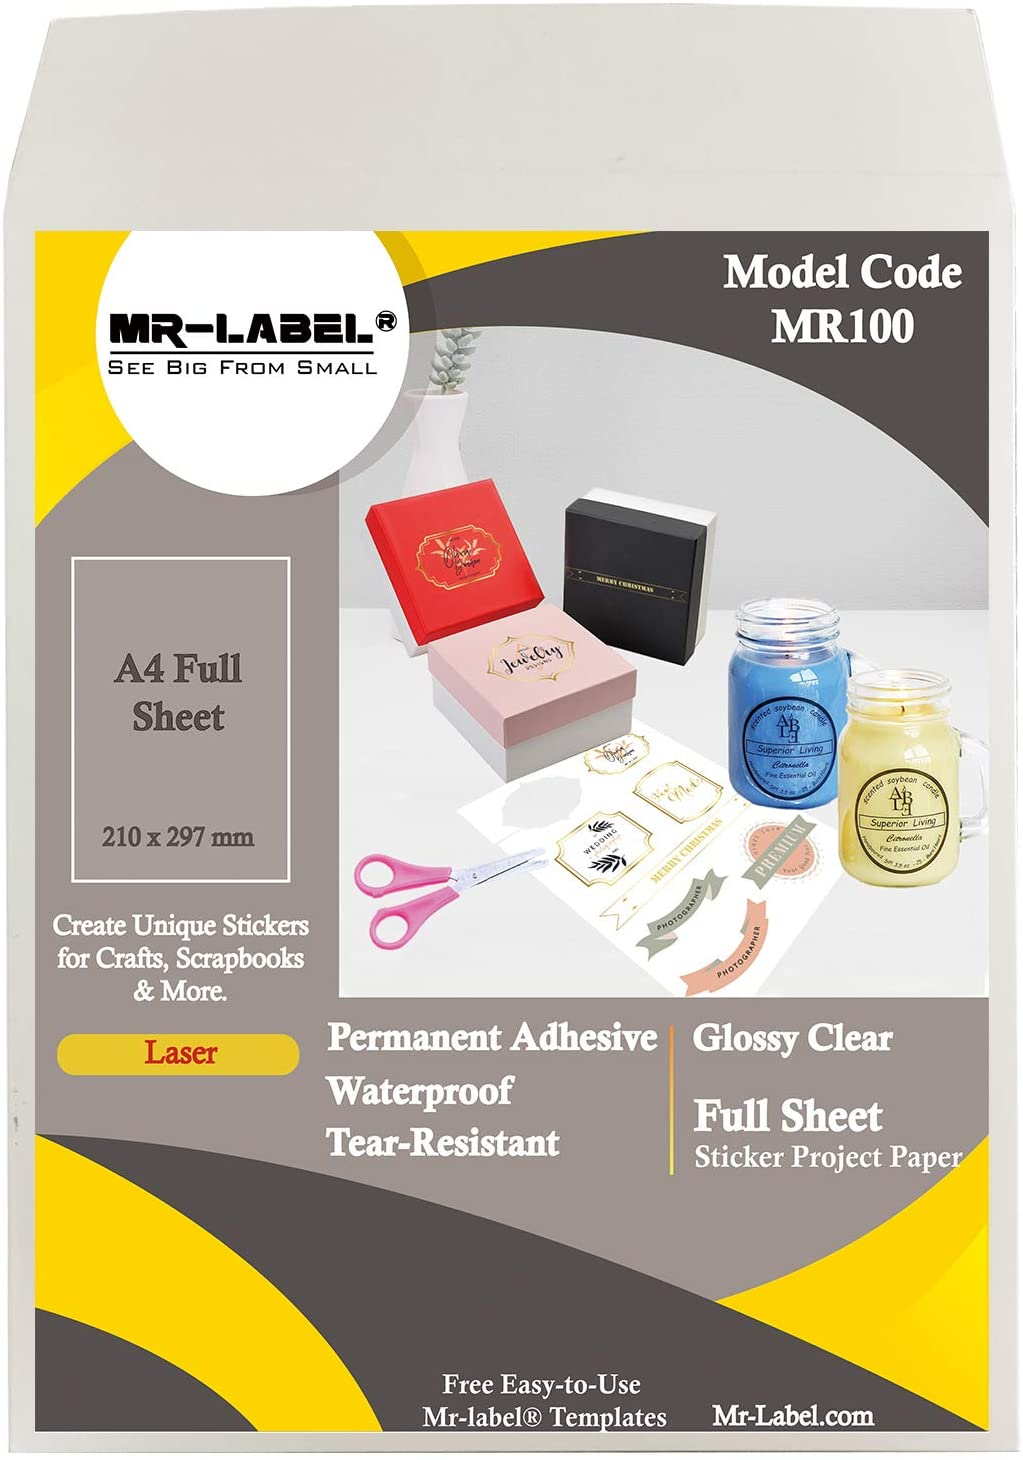 Mr-Label Extra Large Clear Full-Sheet Strong Adhesive Labels -Transparent Tear-Resistant Waterproof Stickers for Kitchen Use | Manufacturing and Storage - Laser Print Only (25 Sheets)